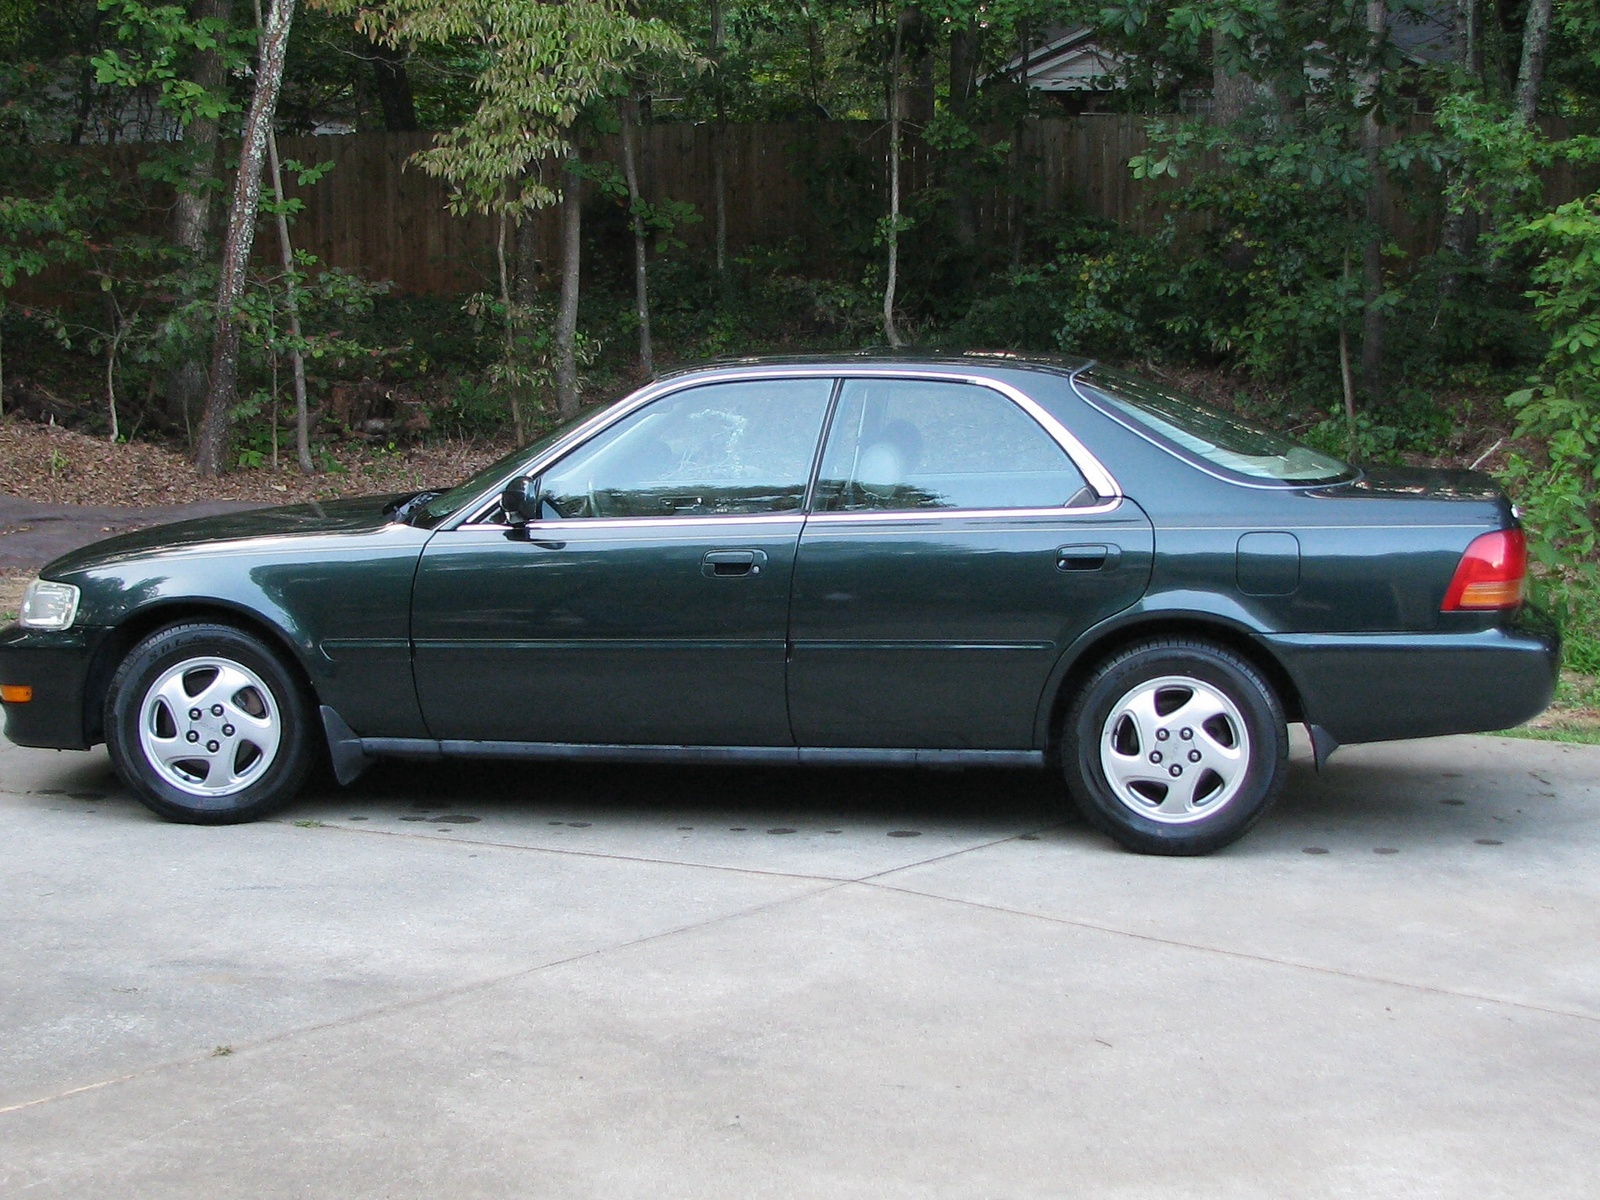 Picture of 1997 Acura TL 3.2 Sedan